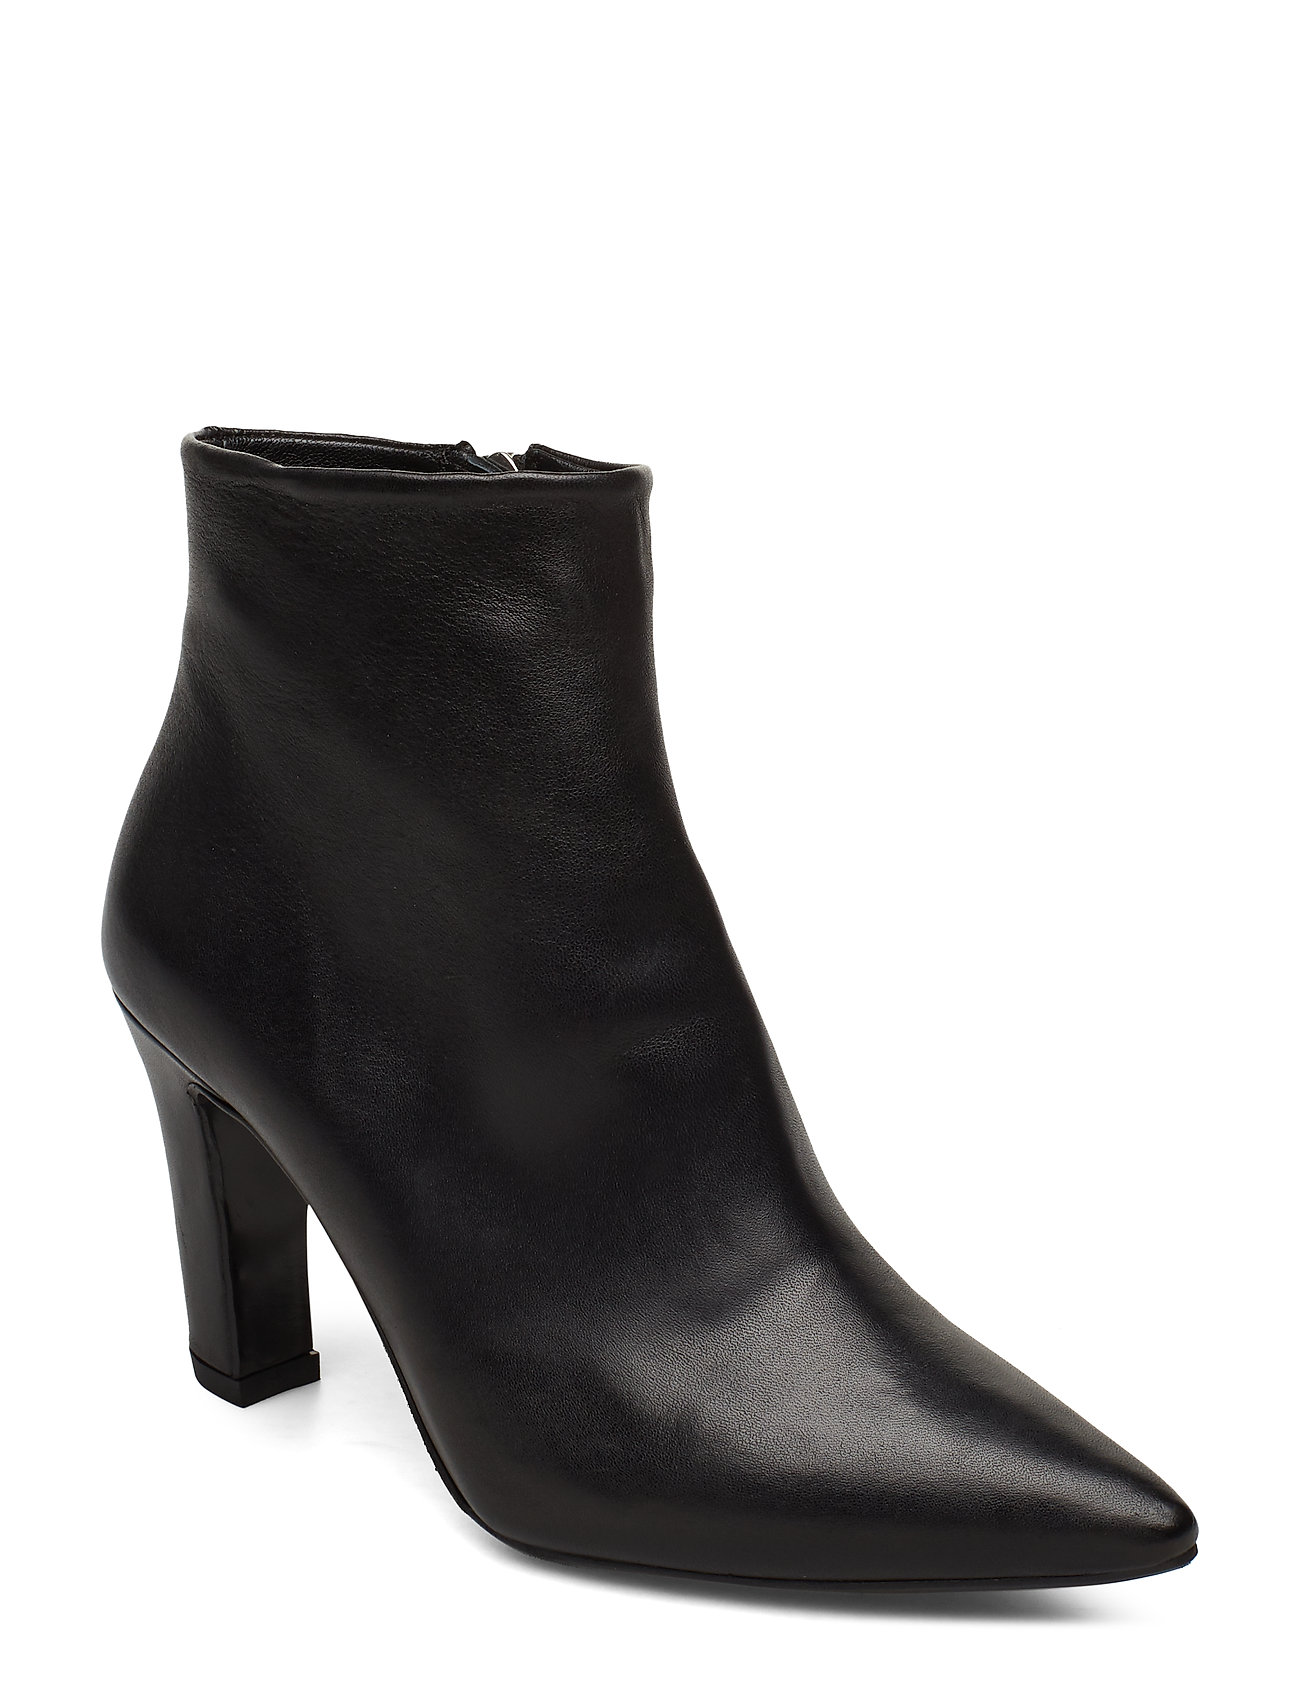 Image of Booties 3365 Shoes Boots Ankle Boots Ankle Boot - Heel Sort Billi Bi (3406199963)